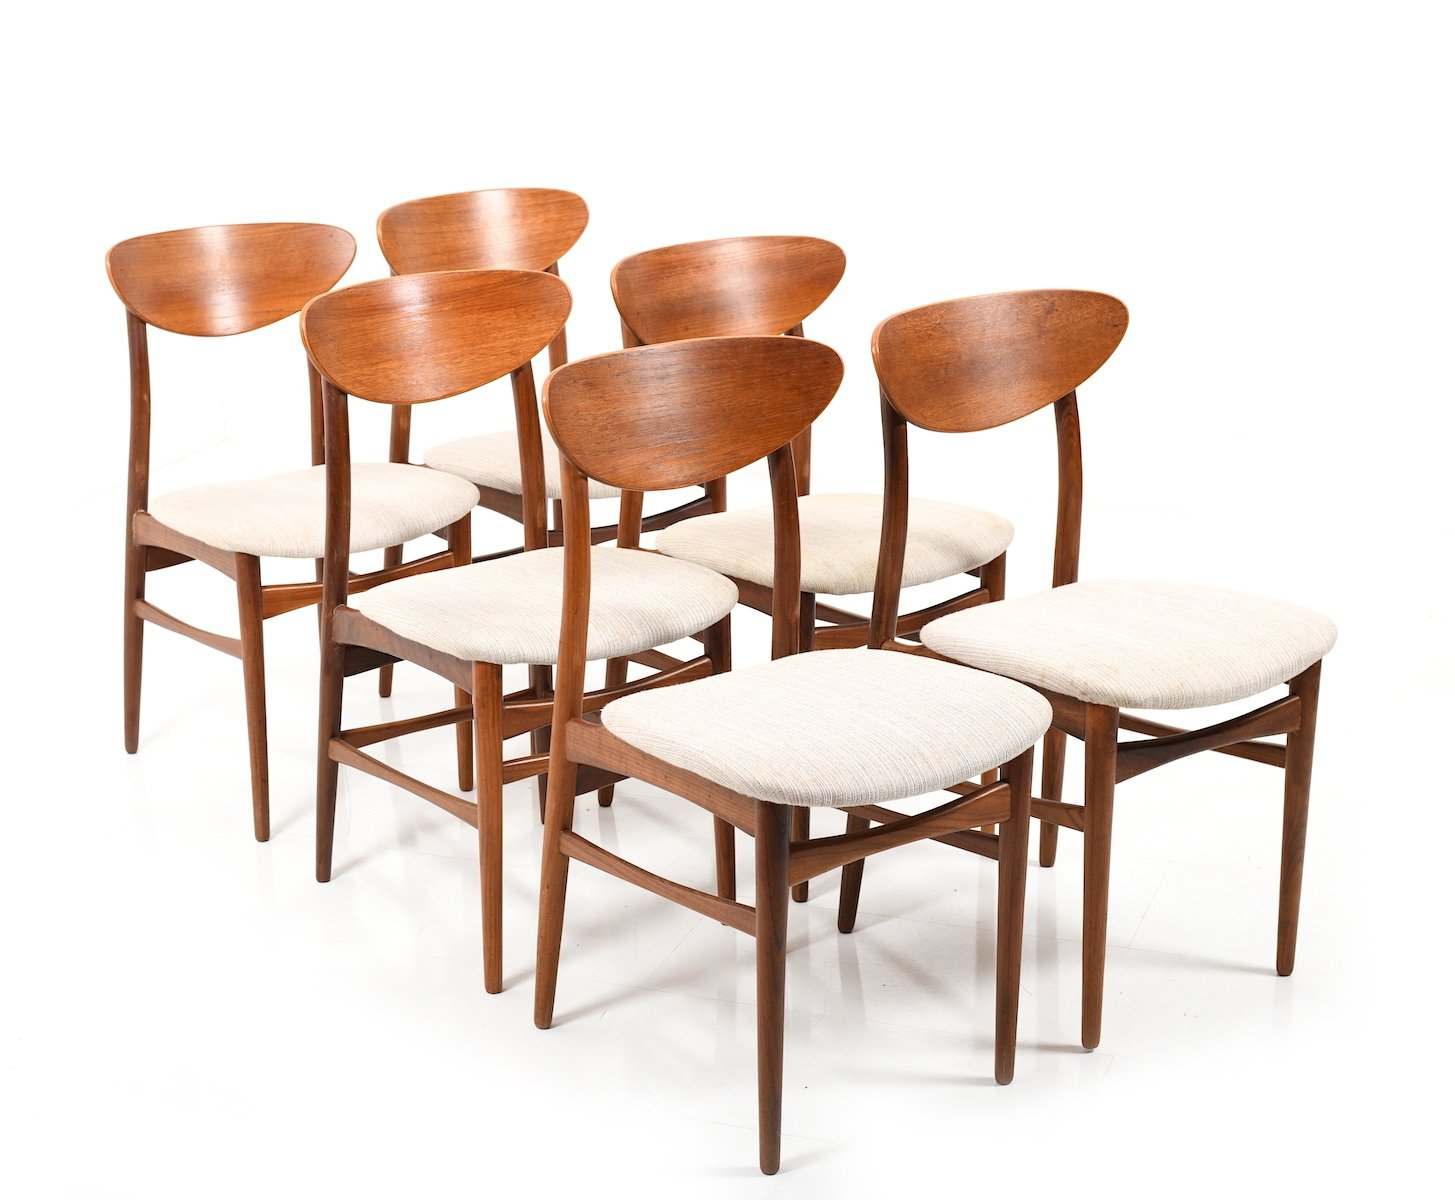 Set of 6 mid century danish teak dining chairs